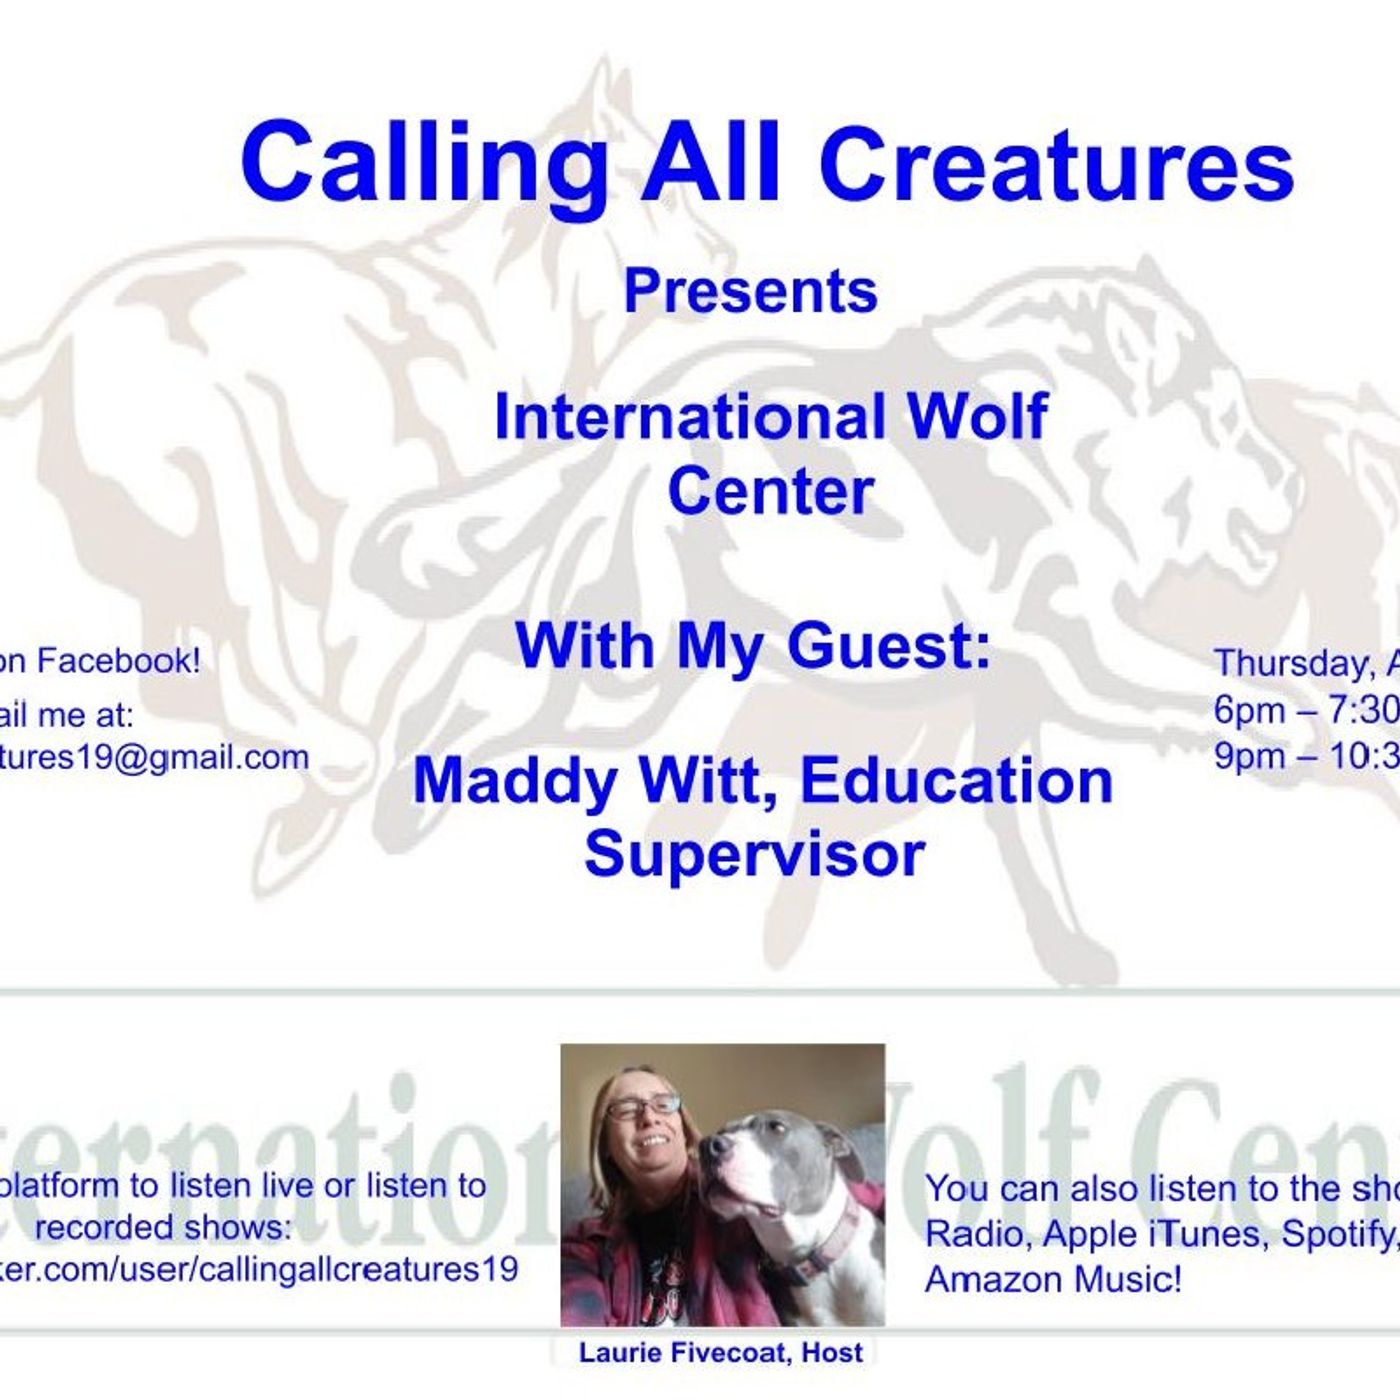 Calling All Creatures Presents the International Wolf Center